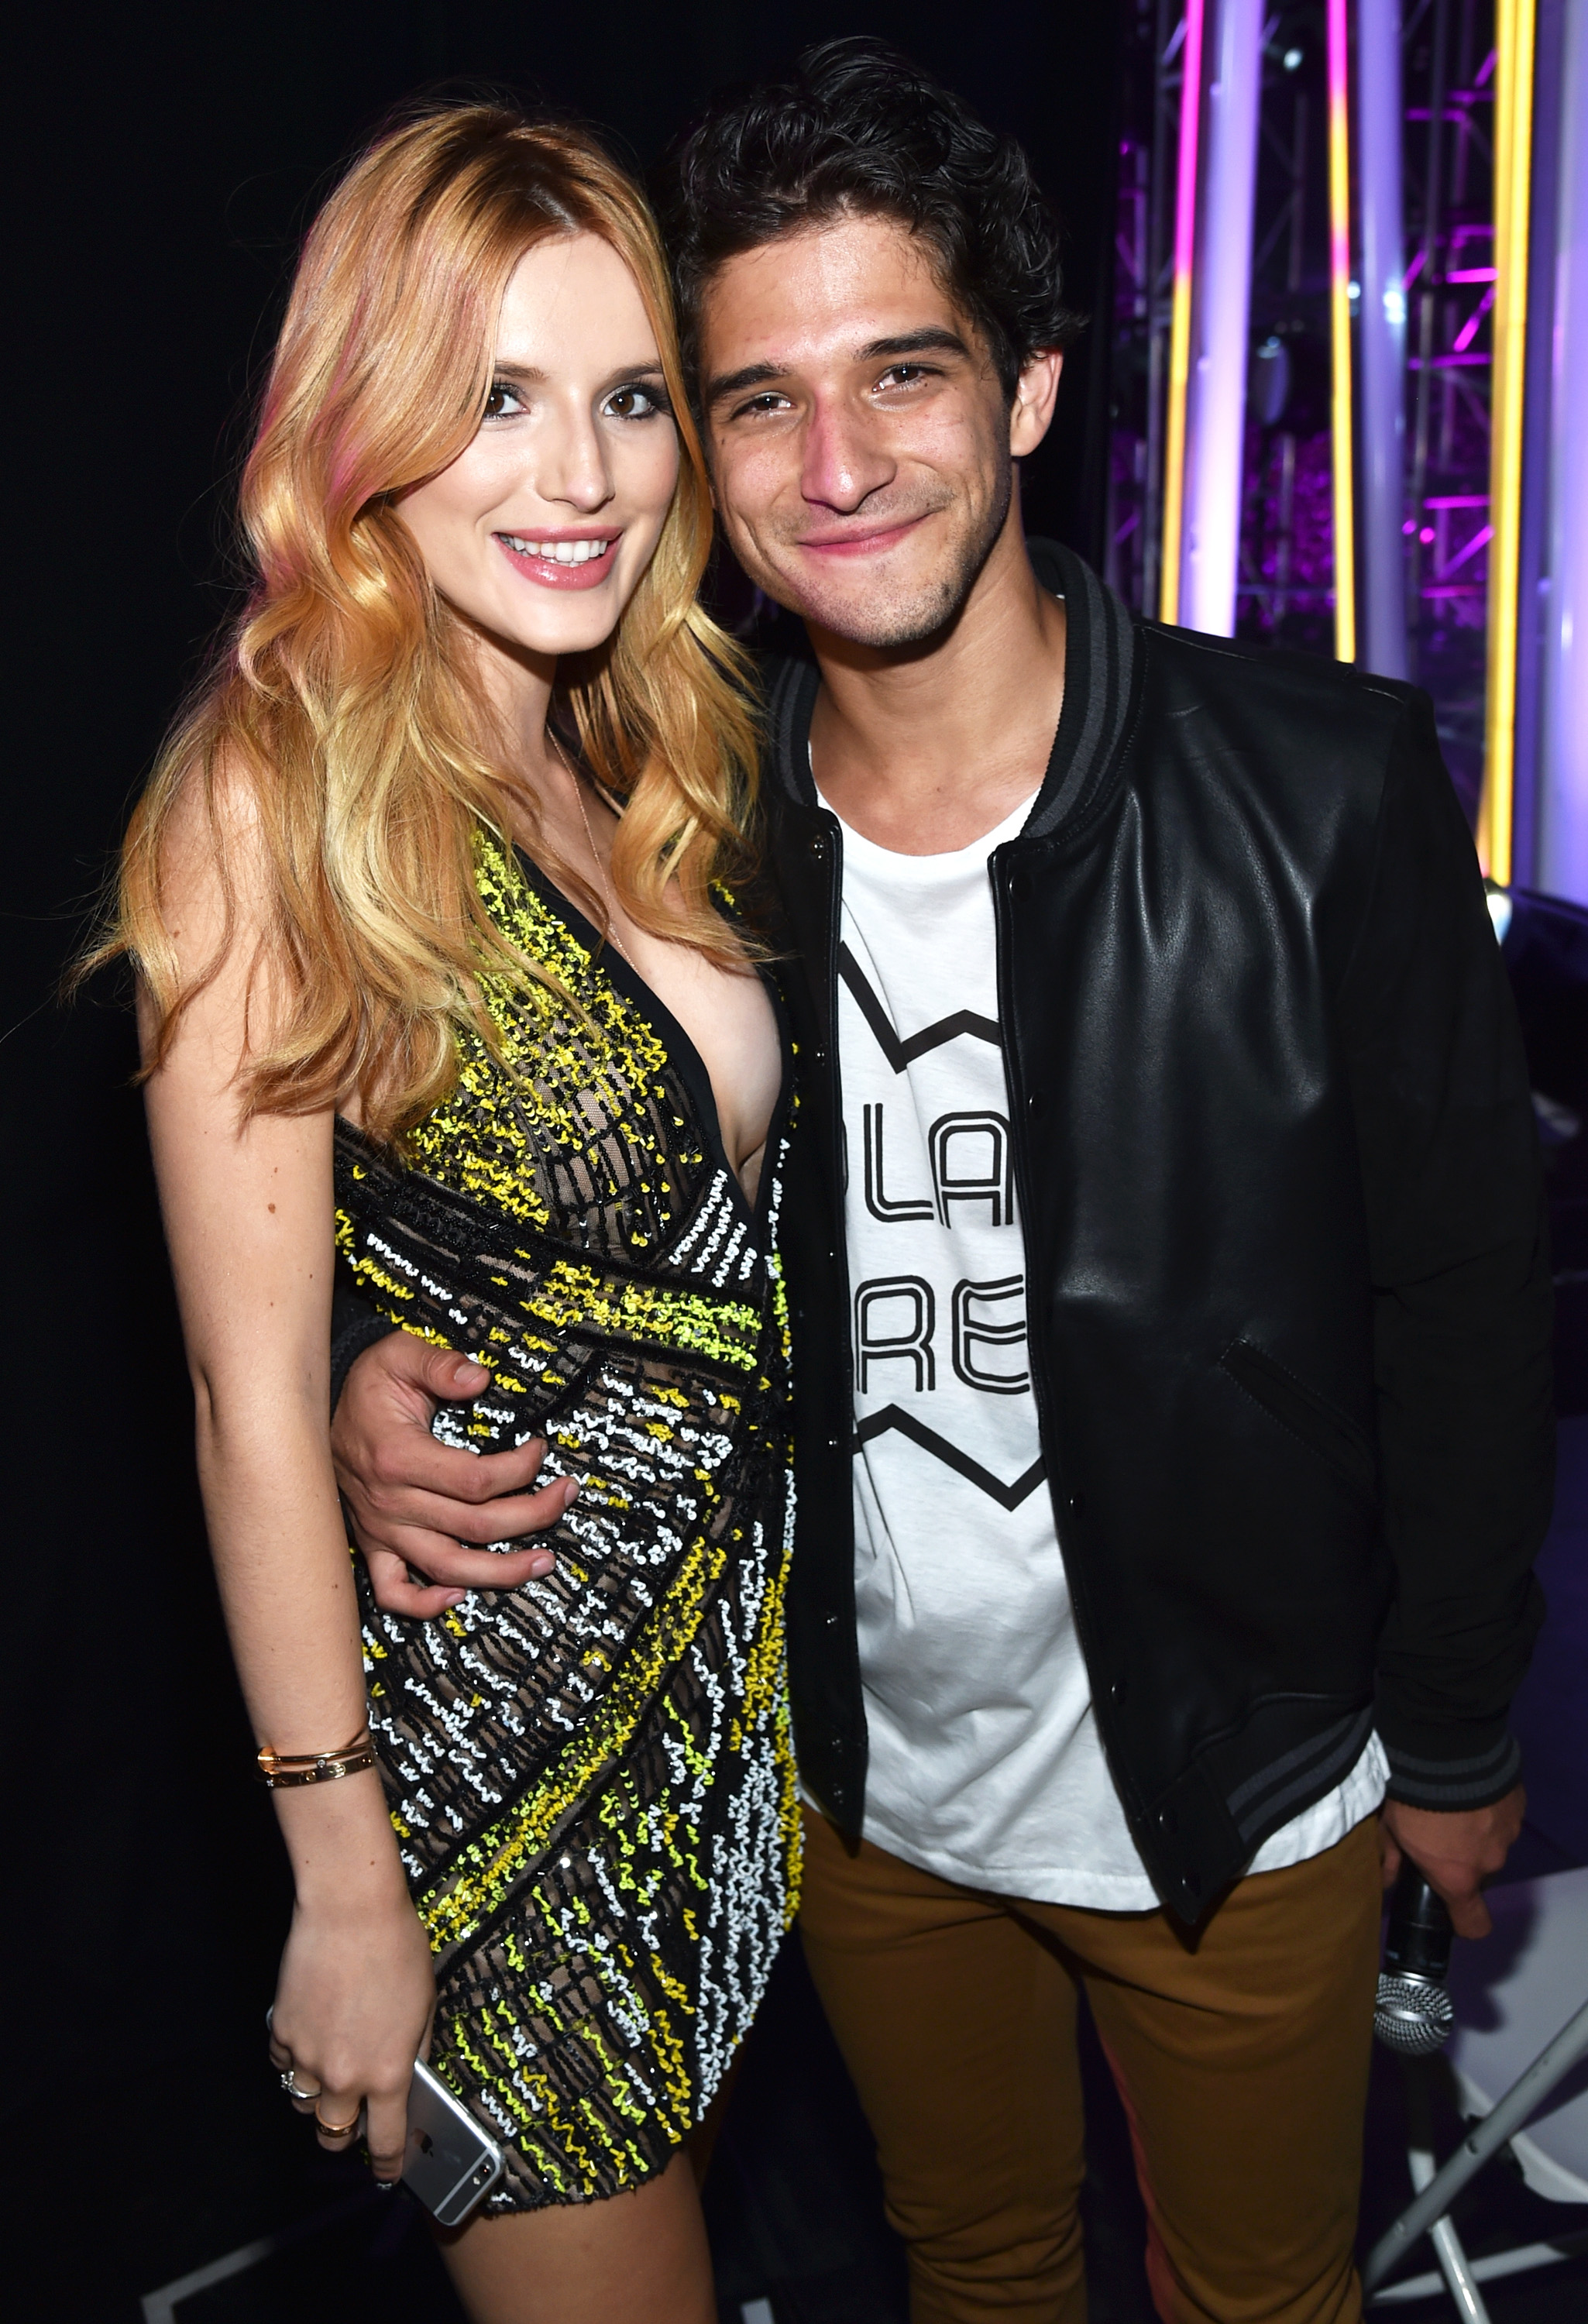 who is bella thorne dating now 2016